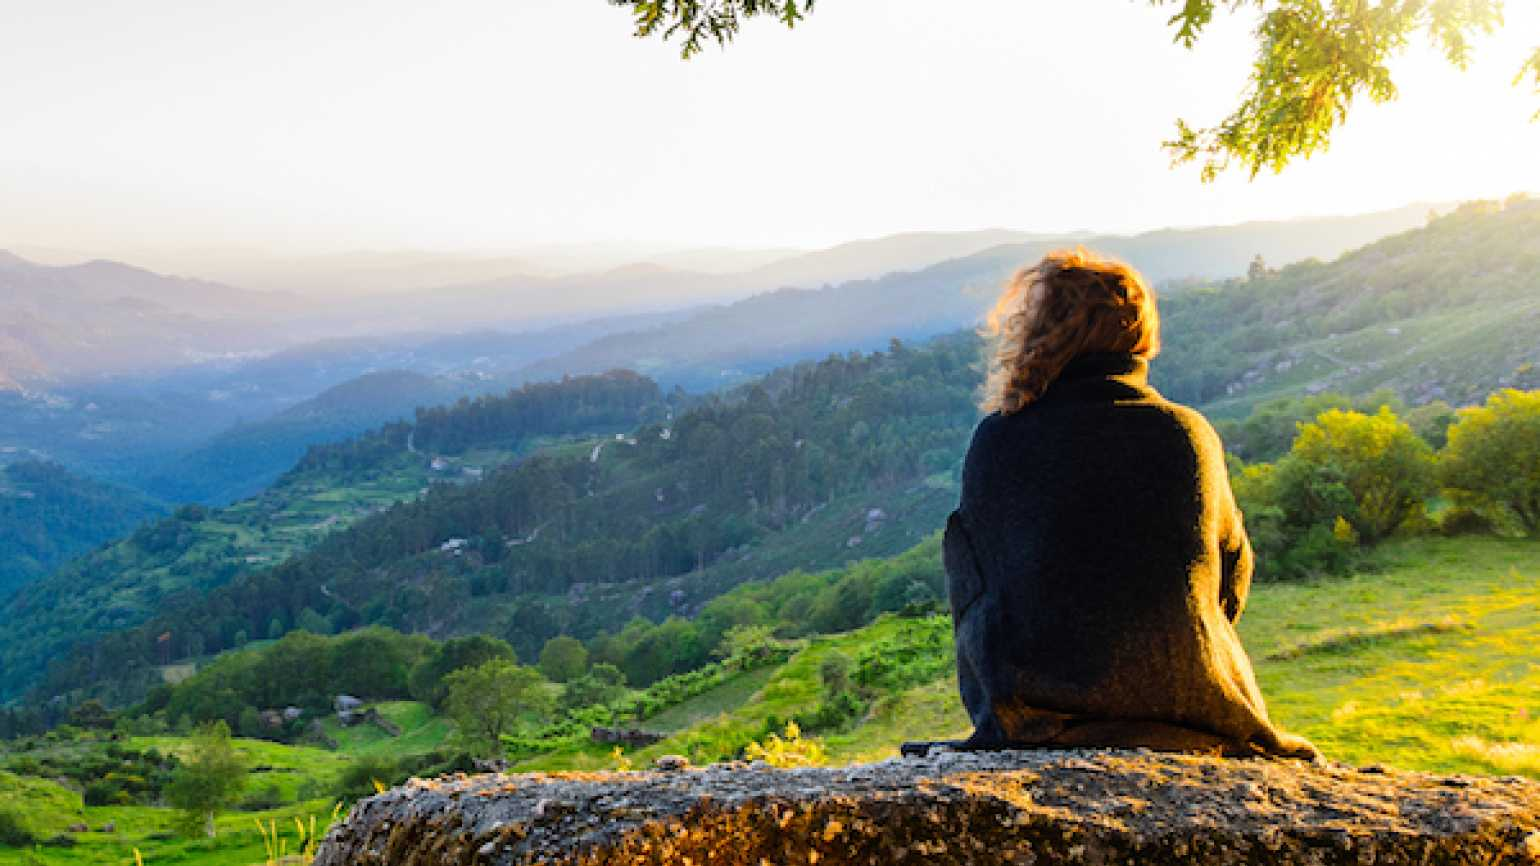 Can God speak to us through silence?